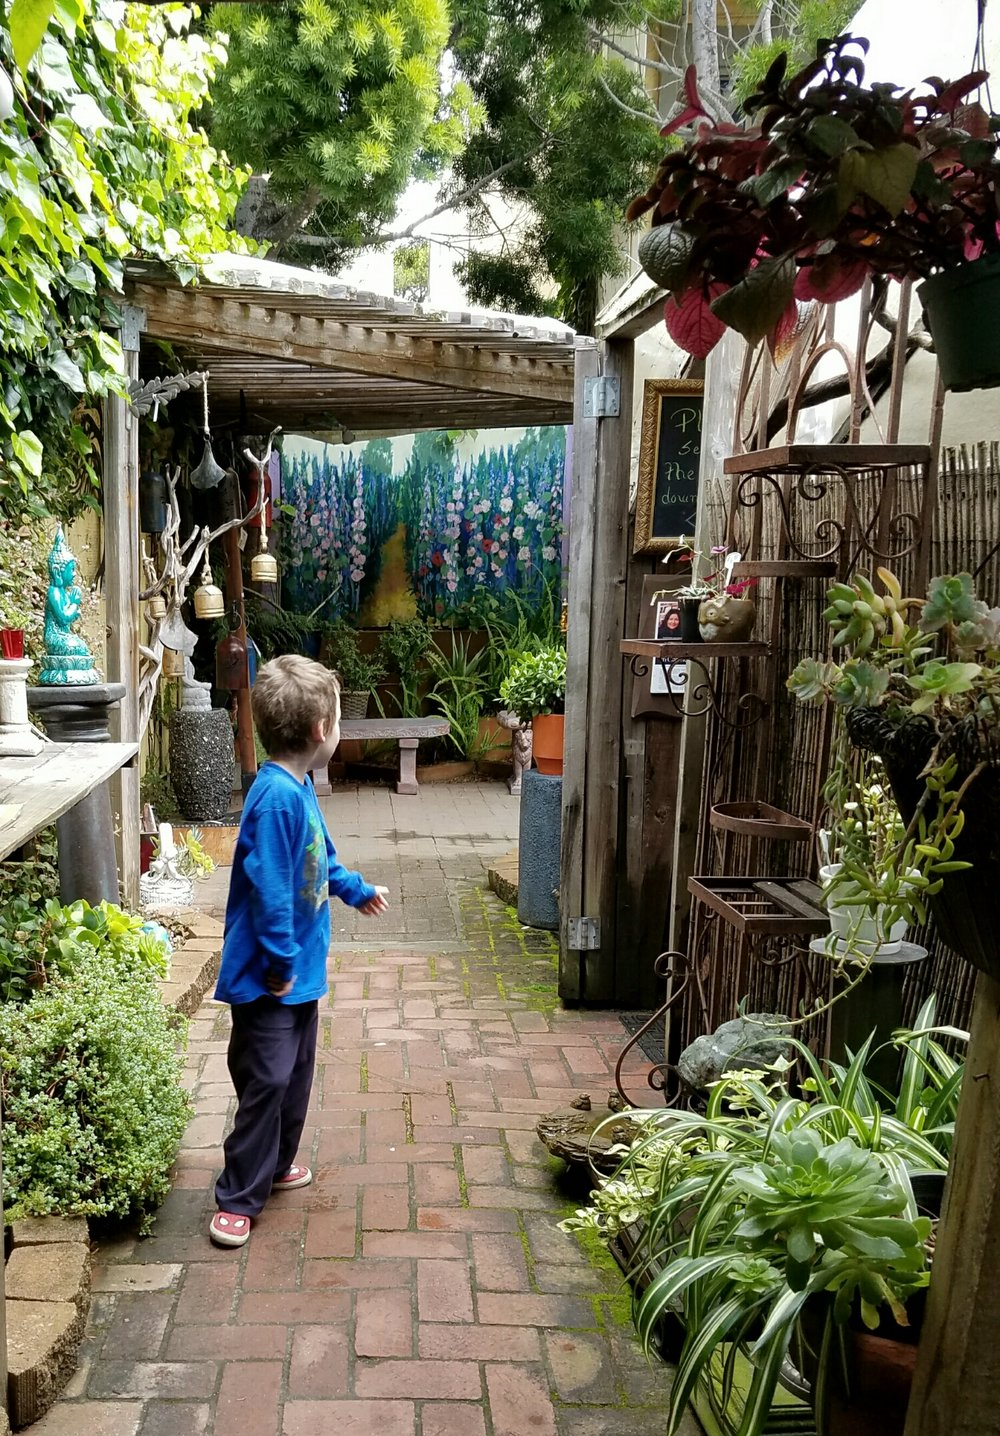 The Secret Garden in the village of Carmel By the Sea, California.